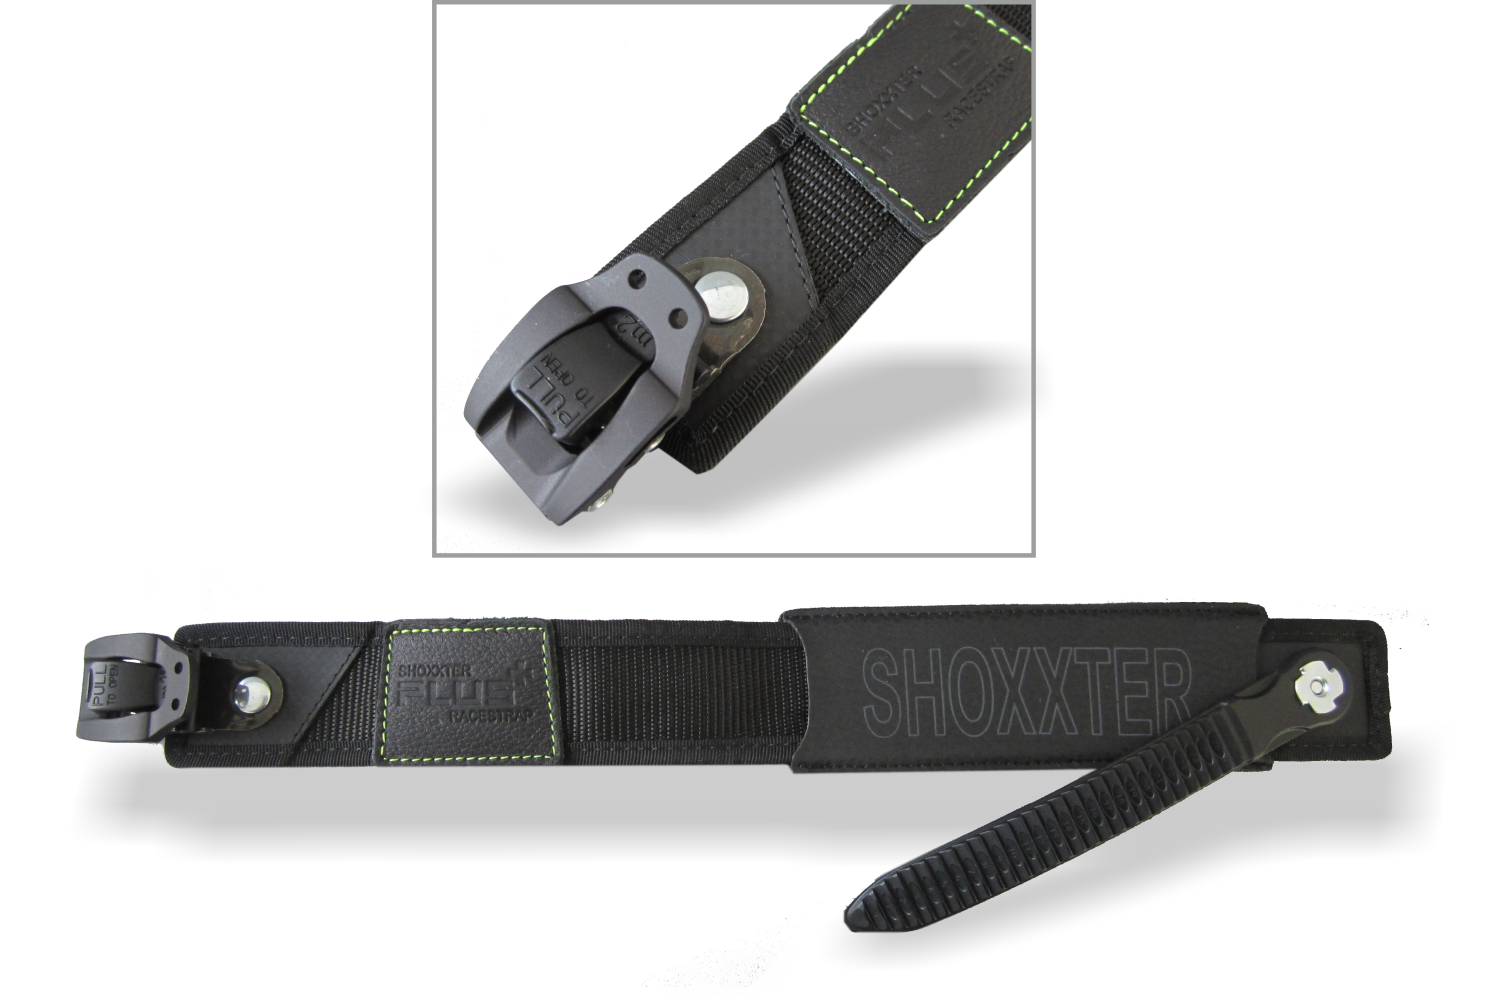 Shoxxter Plus Race-Strap